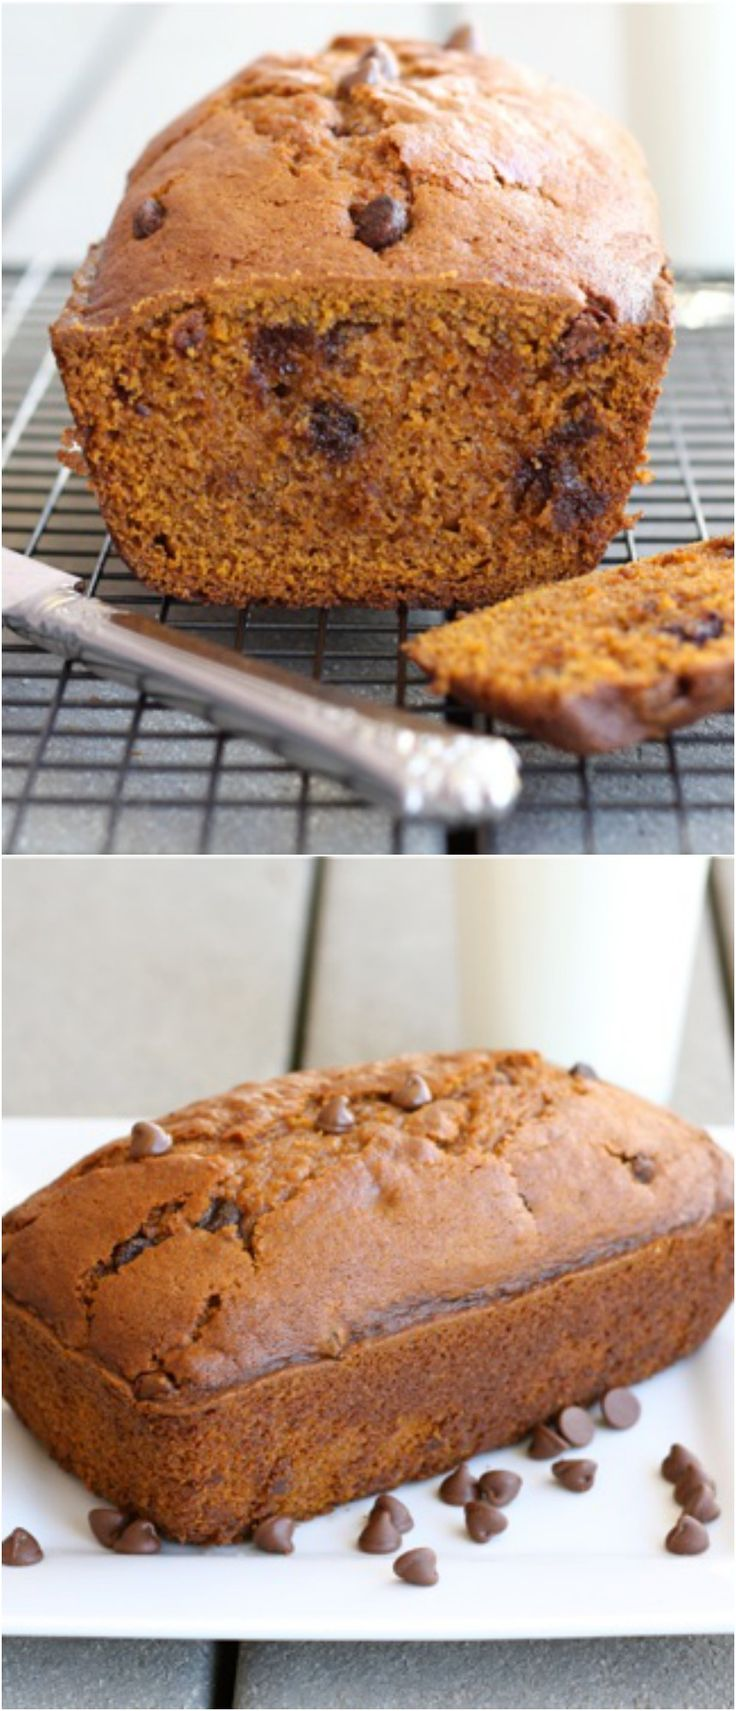 The BEST Pumpkin Chocolate Chip Bread Recipe on twopeasandtheirpod.com You have to make this one! #recipe #pumpkin